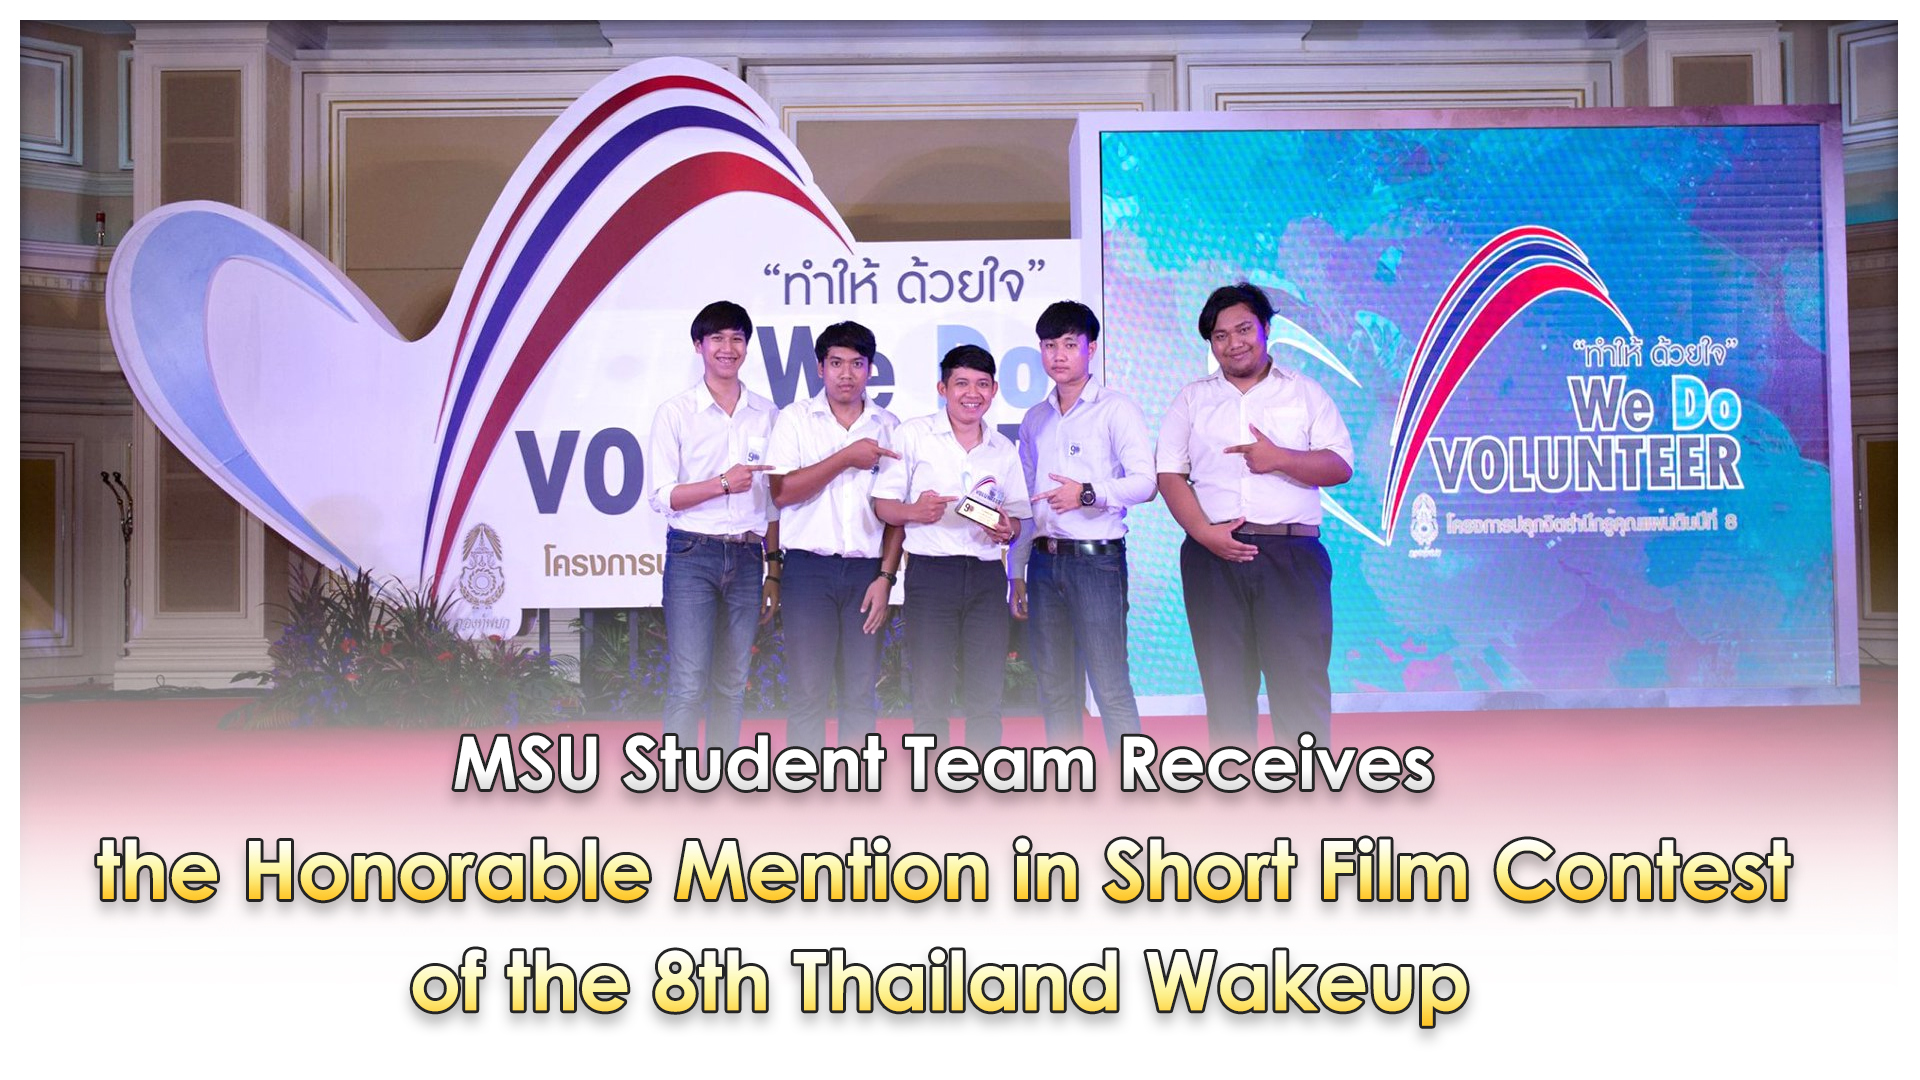 MSU Student Team Receives the Honorable Mention in Short Film Contest of the 8th Thailand Wakeup